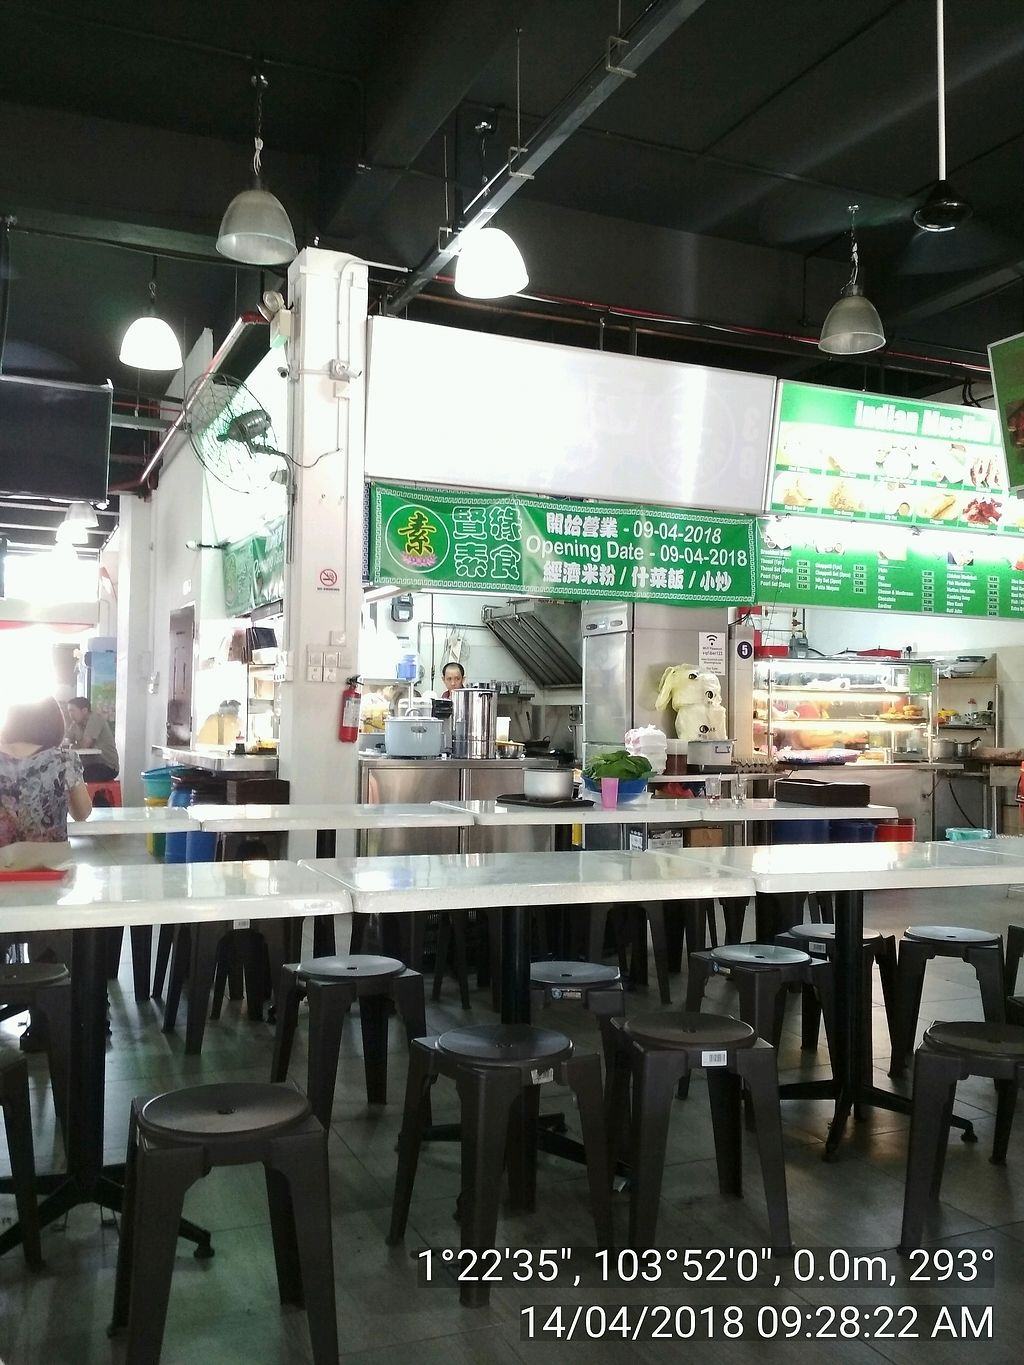 """Photo of Xian Yuan Vegetarian  by <a href=""""/members/profile/kwatoyo"""">kwatoyo</a> <br/>stall inside coffeeshop  <br/> April 14, 2018  - <a href='/contact/abuse/image/117607/385463'>Report</a>"""